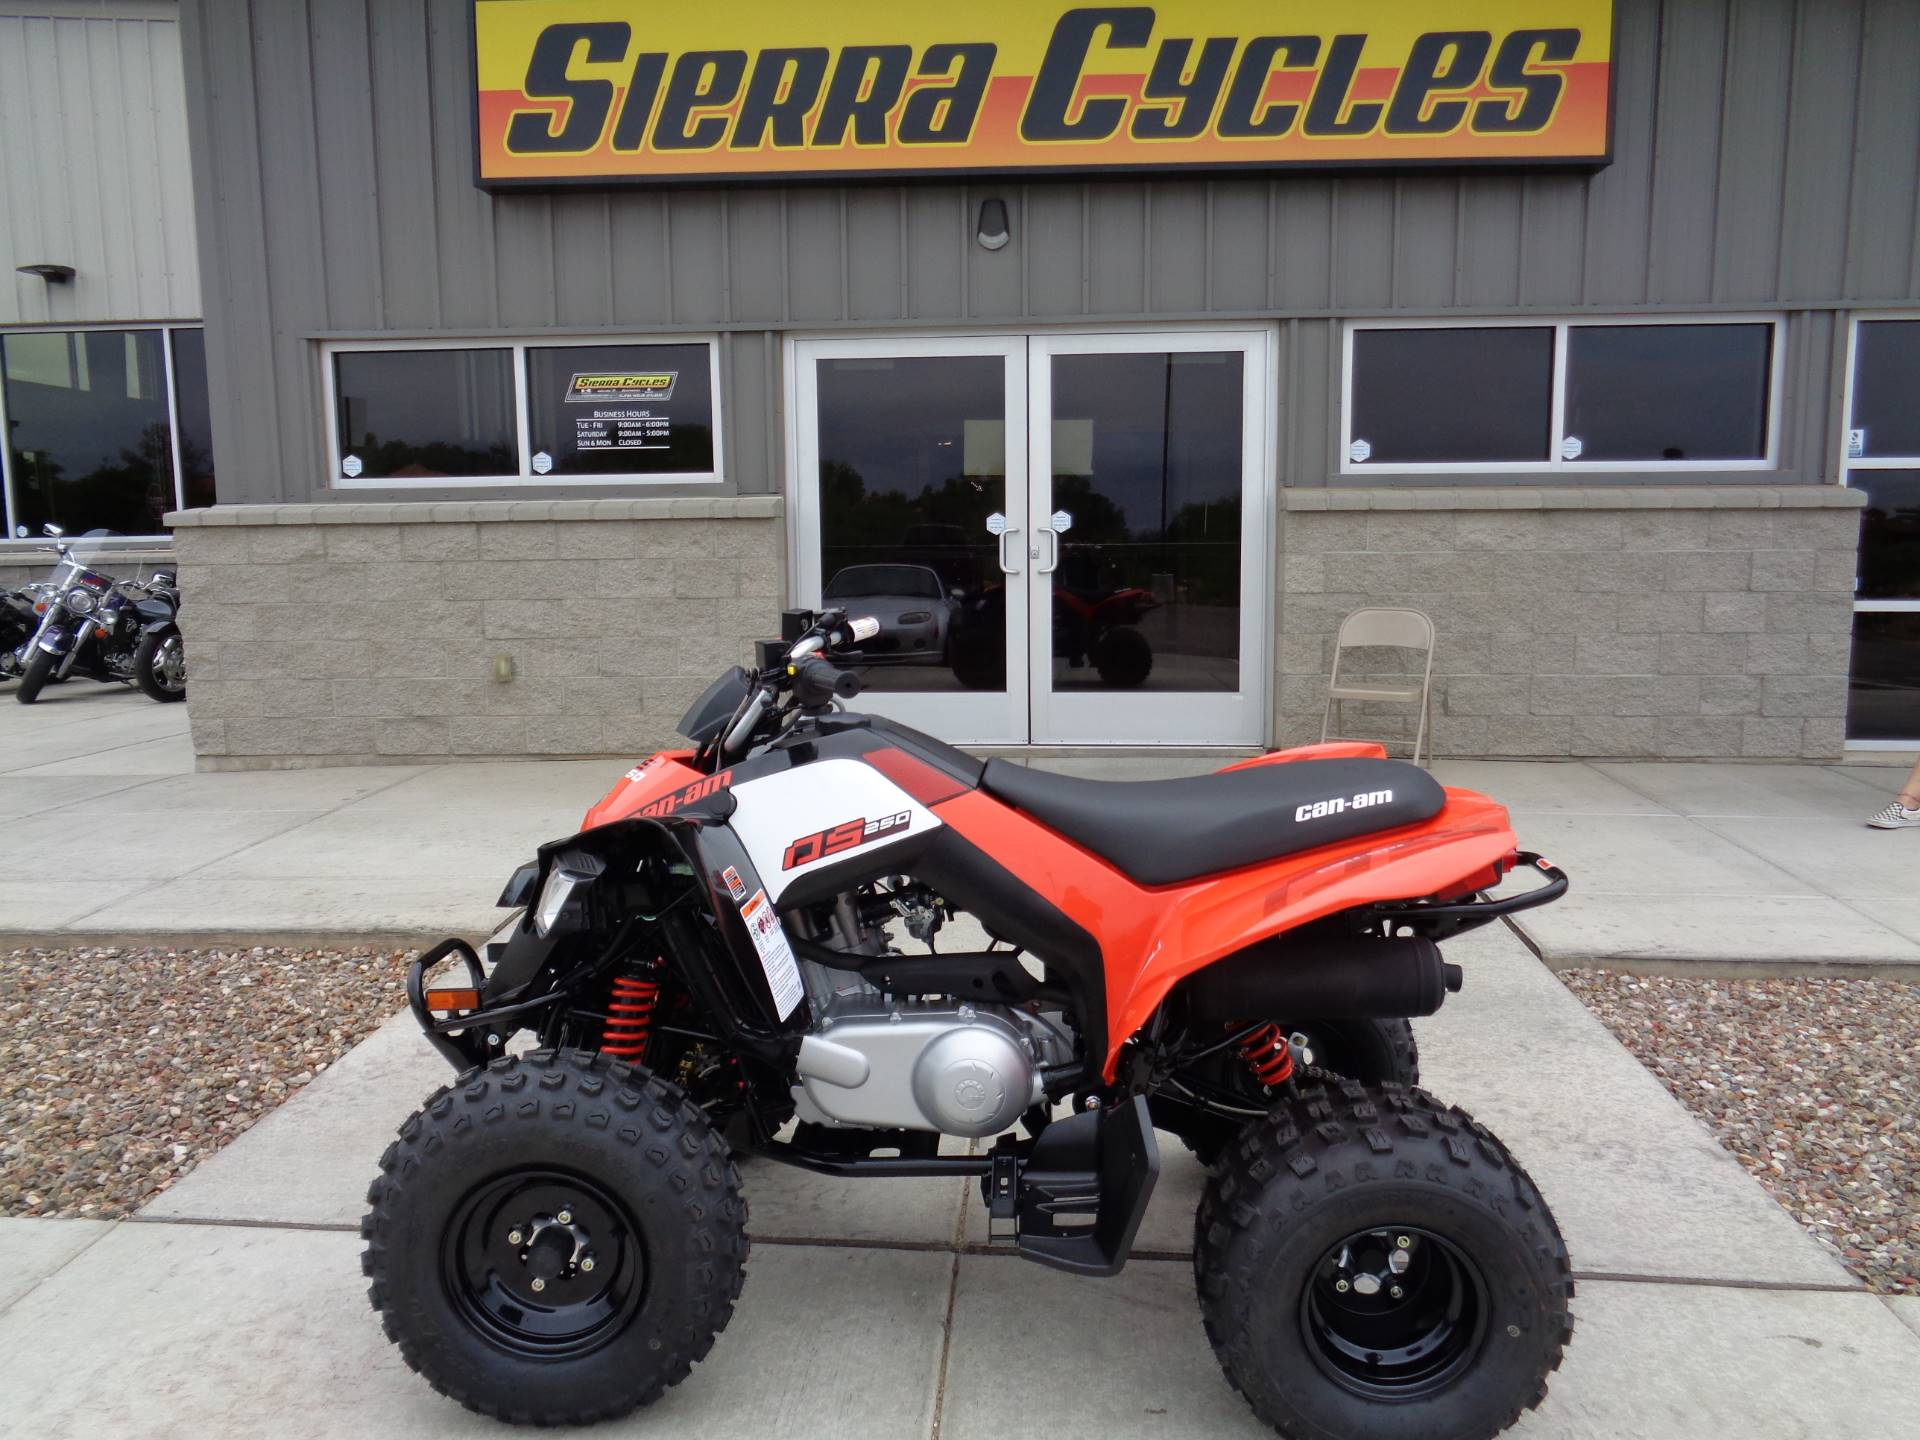 2020 Can-Am DS 250 in Sierra Vista, Arizona - Photo 1